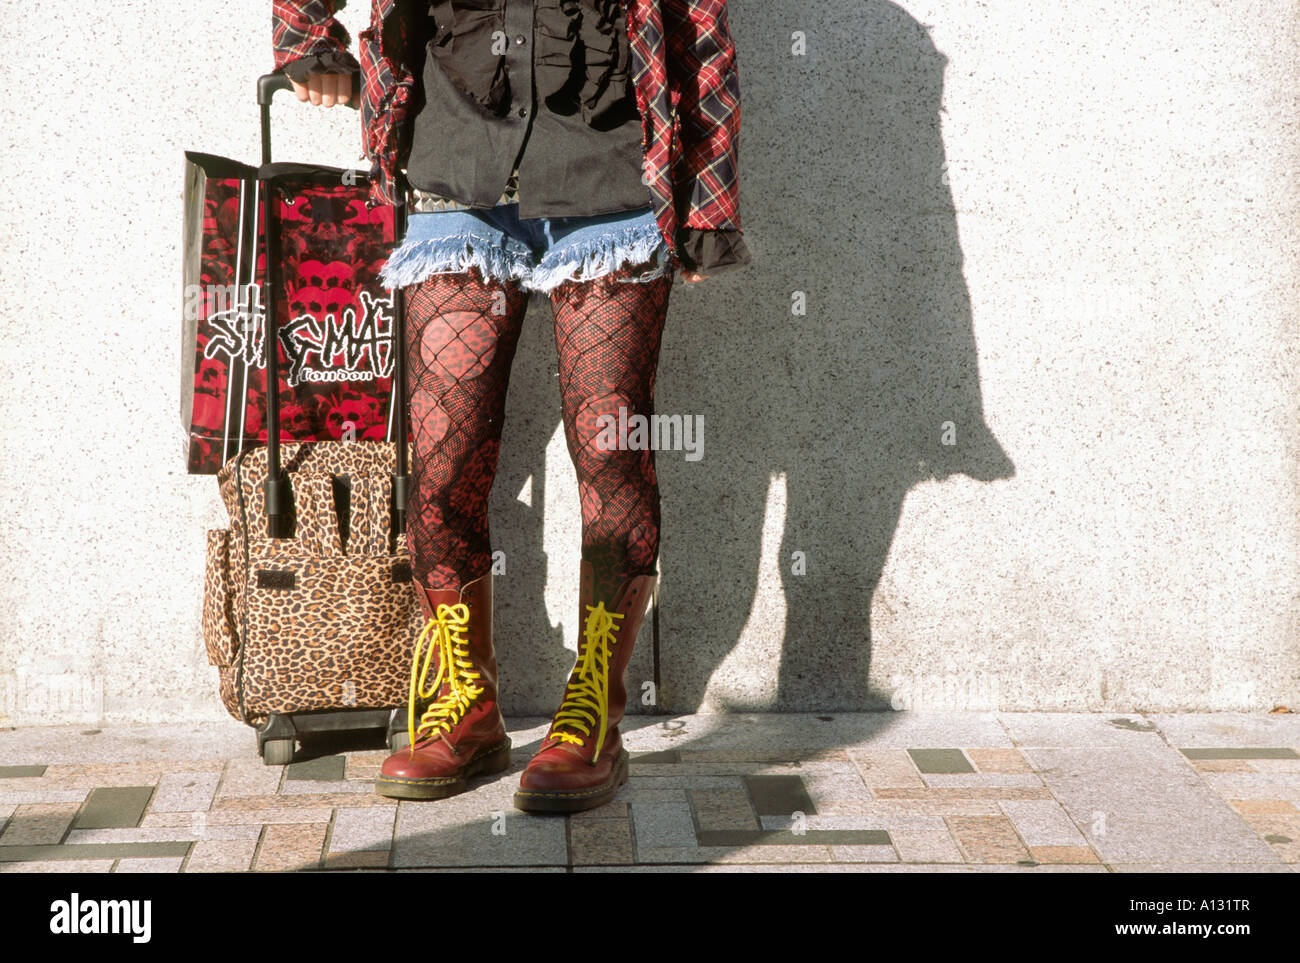 Detail of a cos-player's legs with a wheely bag. Harajuku, Tokyo, Japan - Stock Image